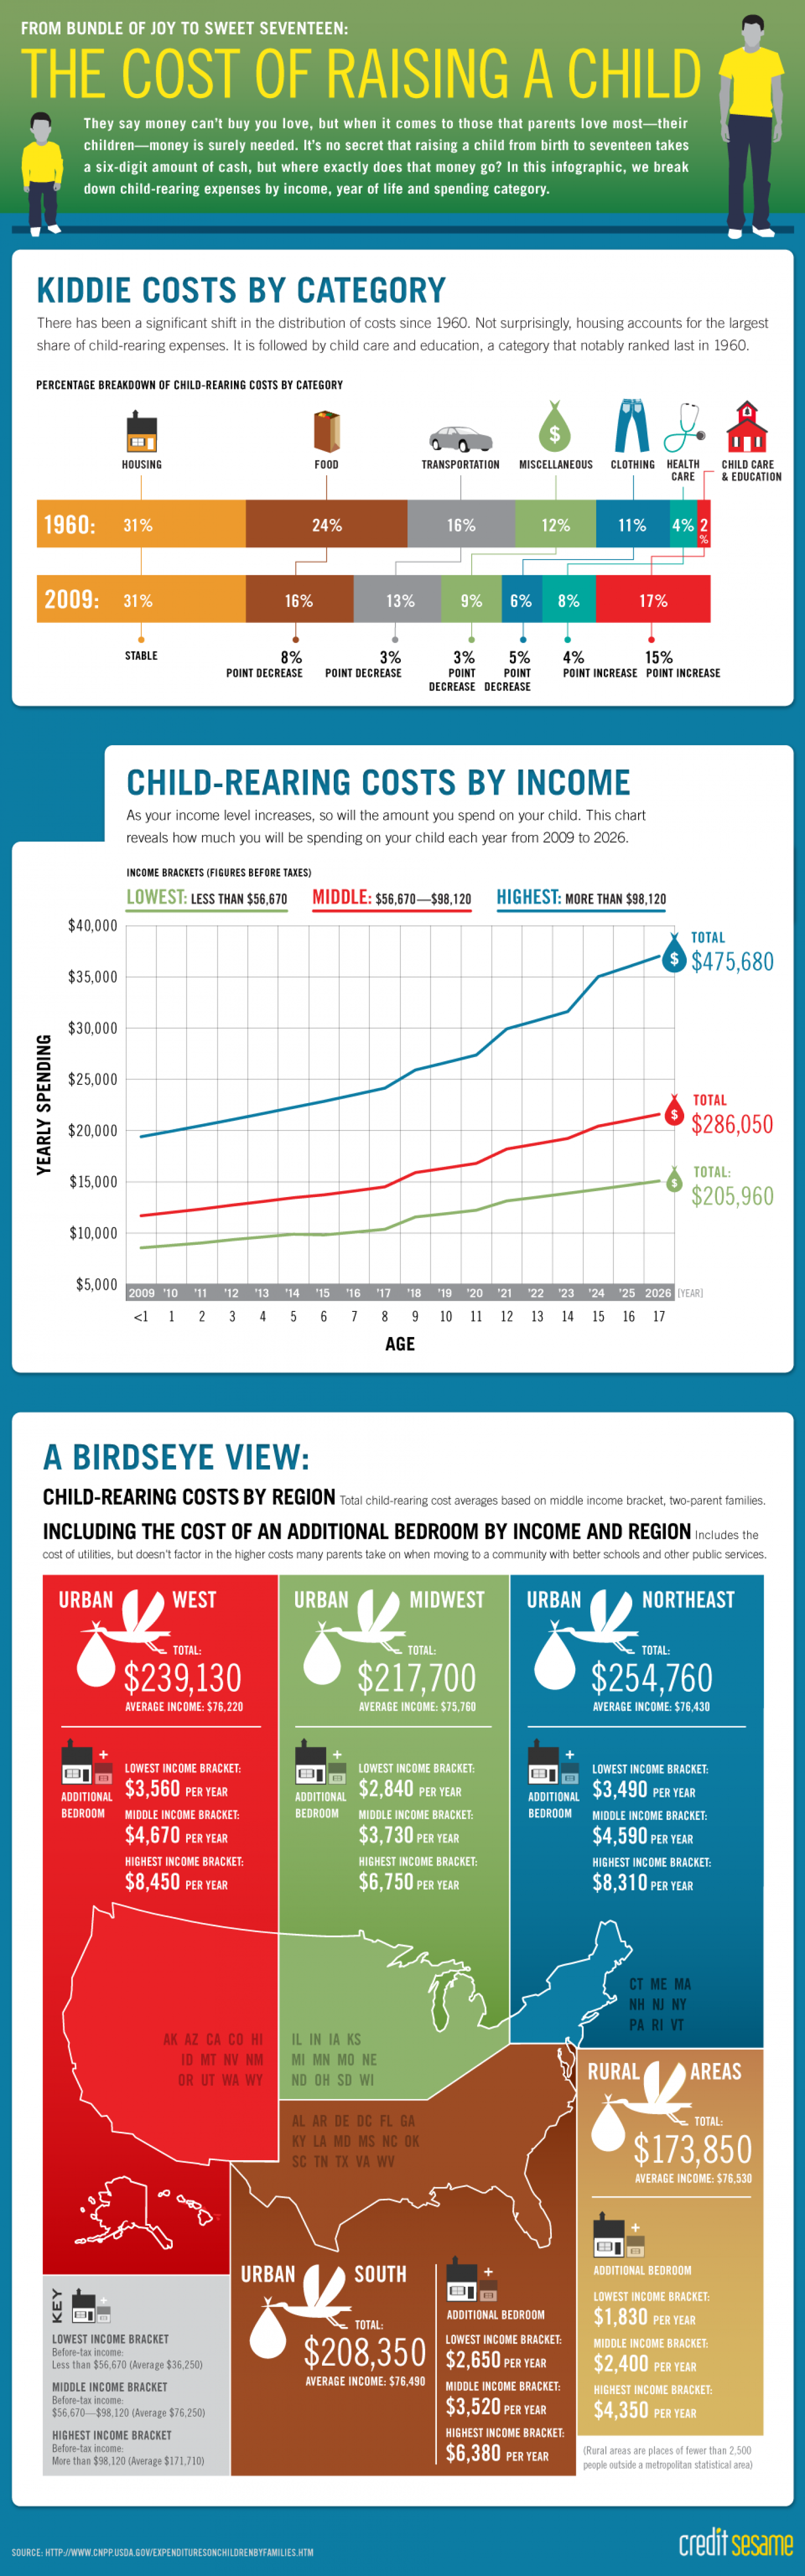 The Cost of Raising a Child Infographic